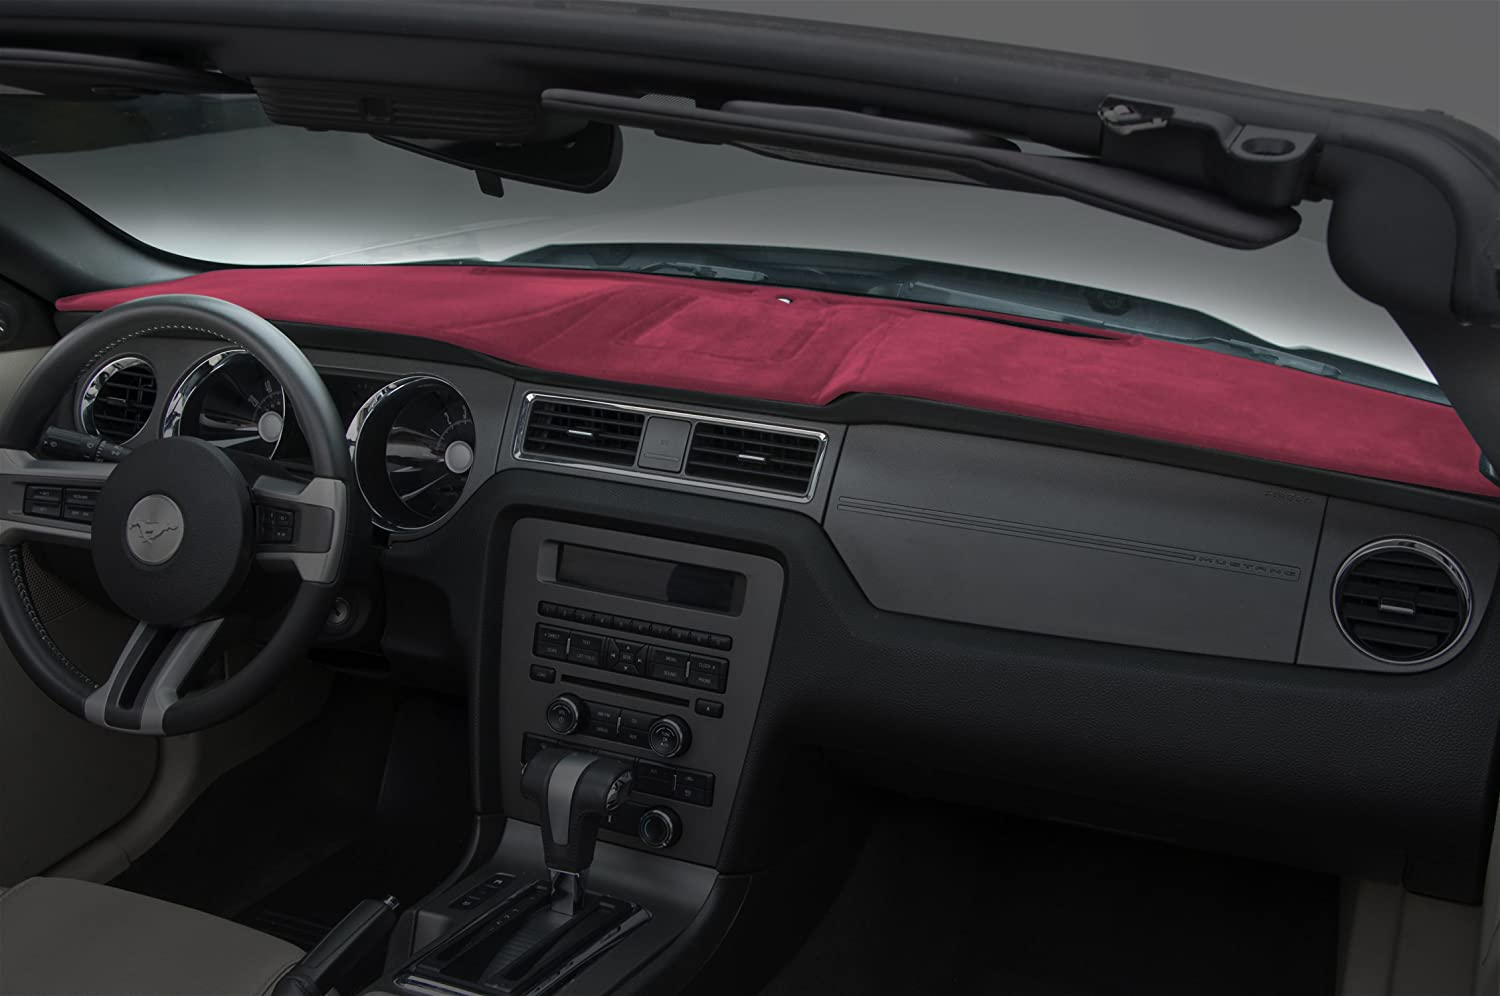 Velour AP Coverking Custom Fit Dashboard Cover for Select Ford Models